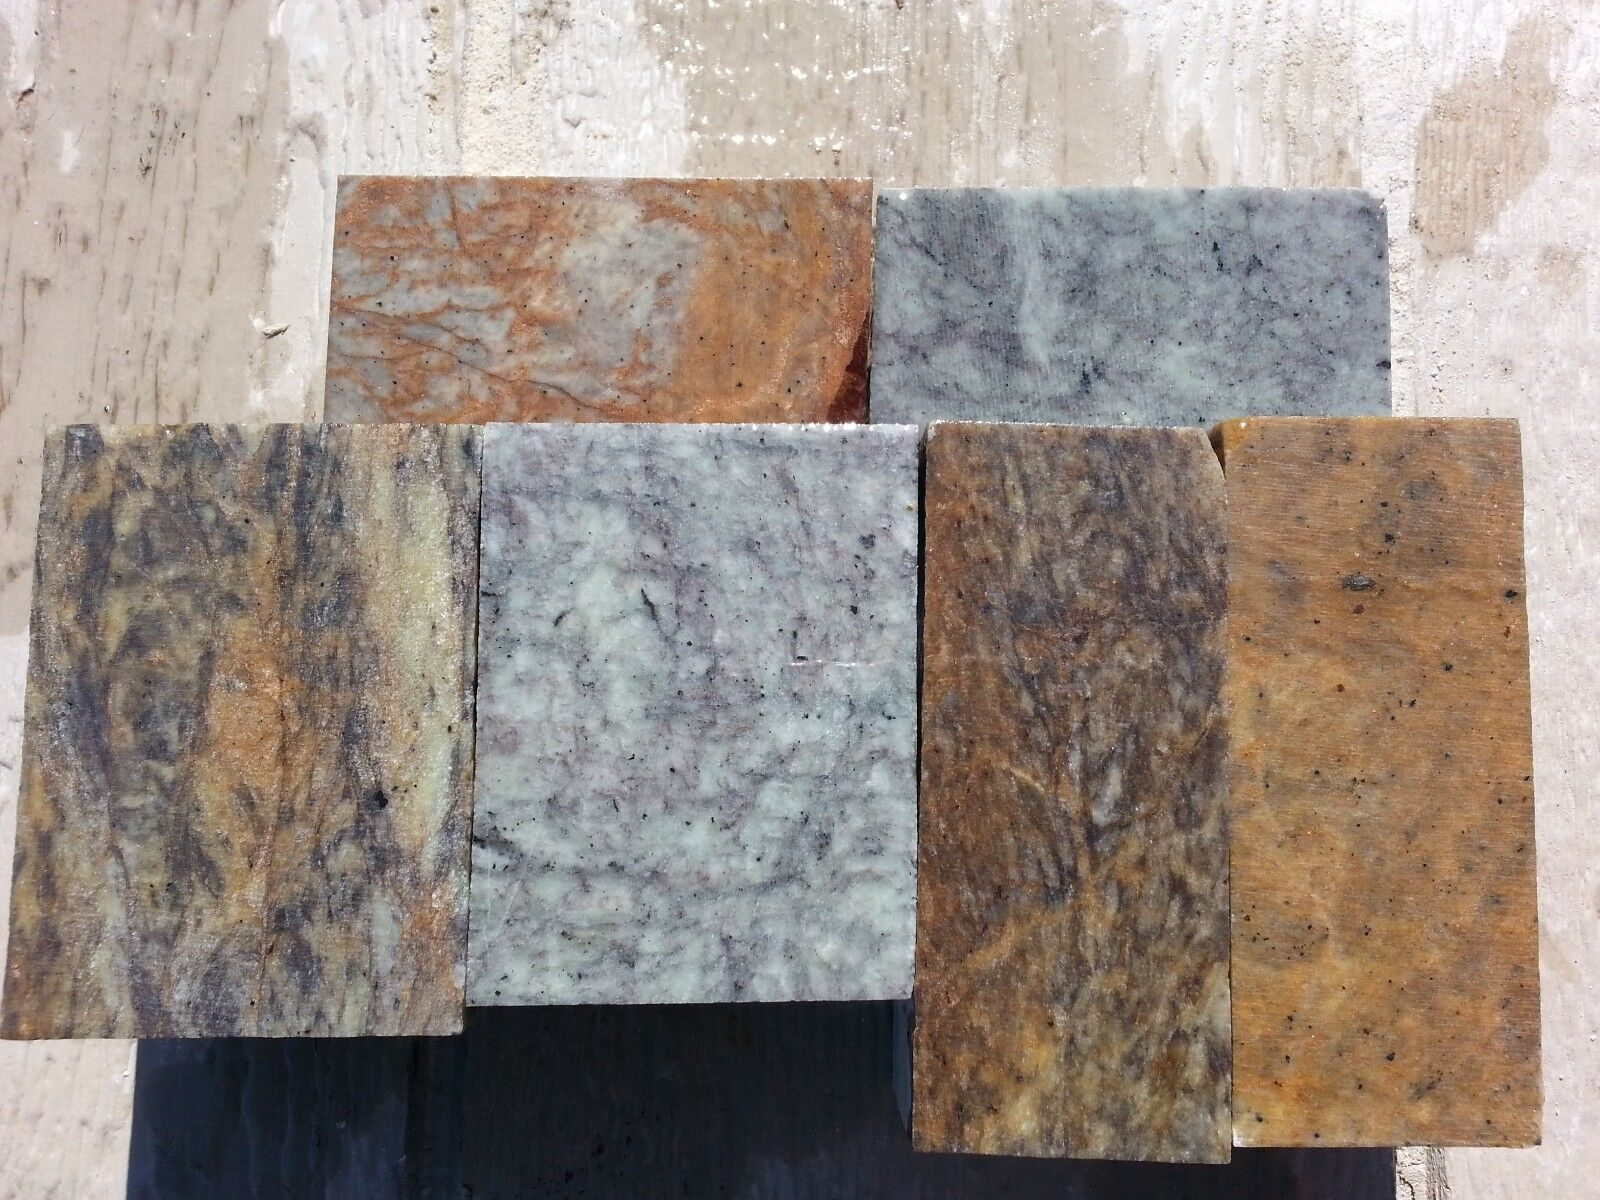 6 PIECES MIX SIZE Soapstone for carving, sculpture, block, slab, pipe